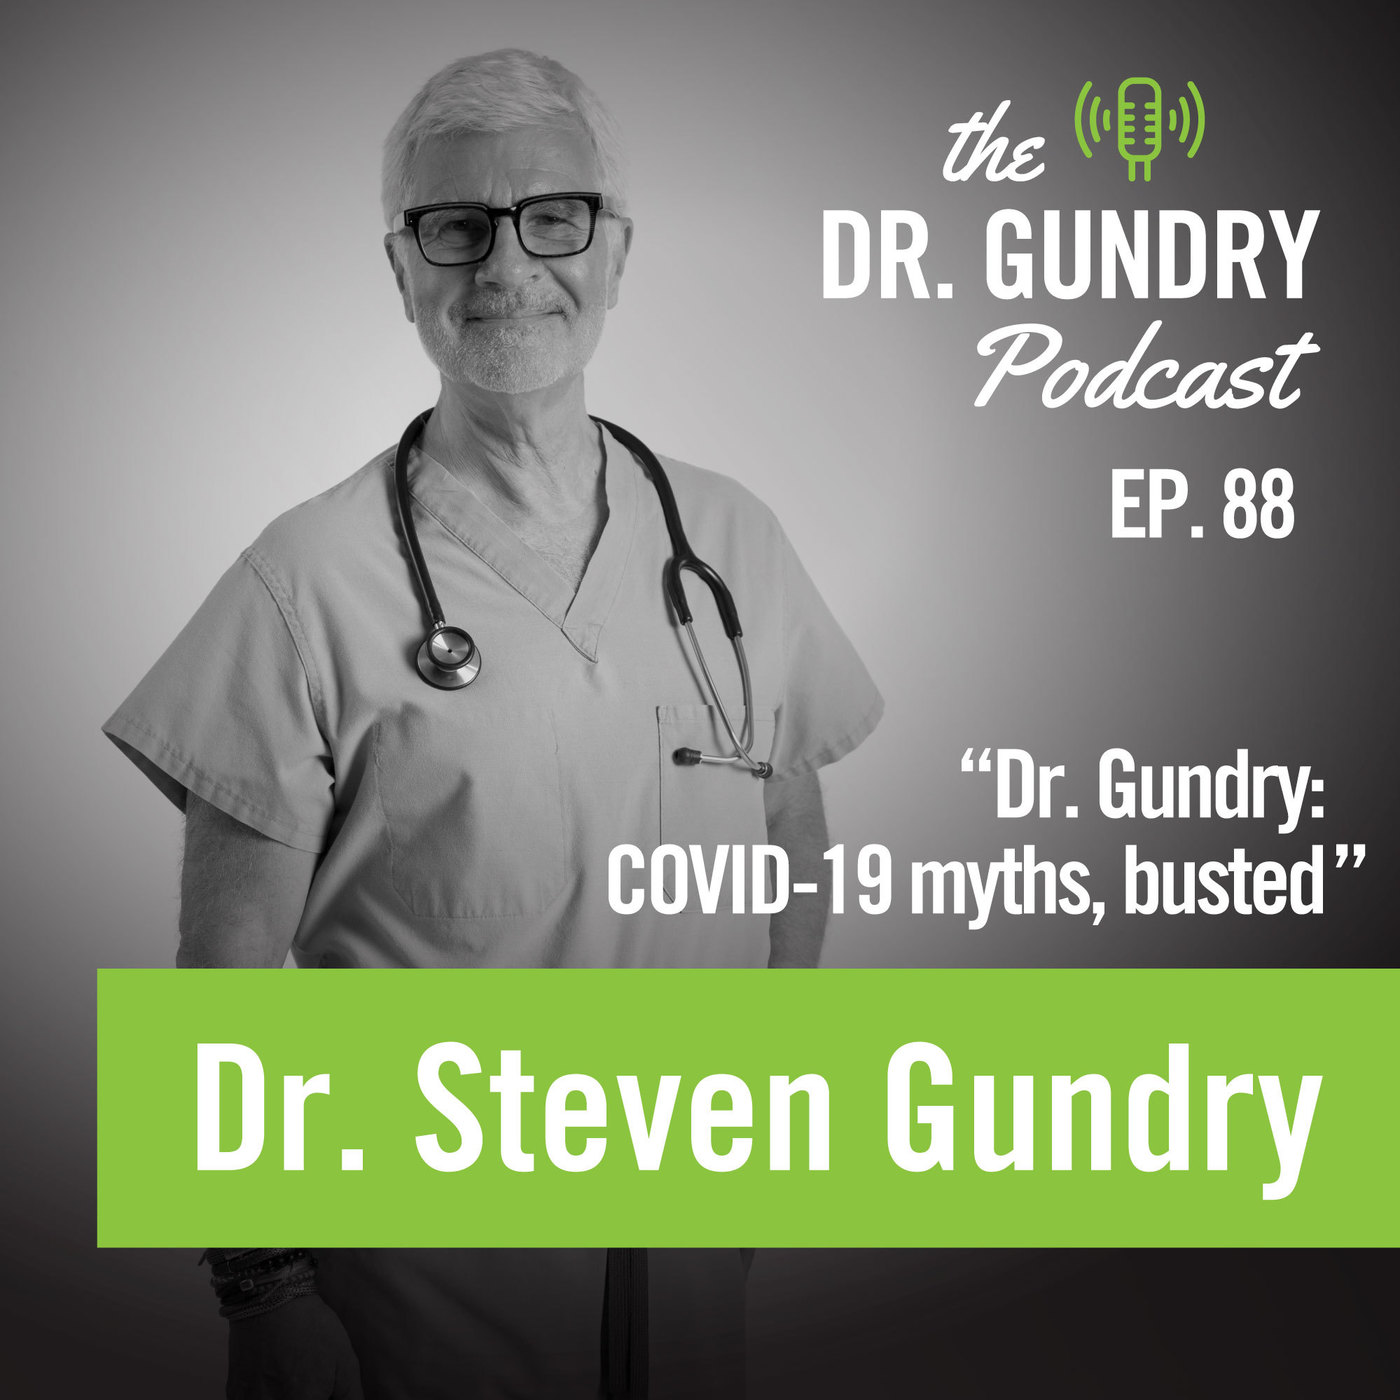 Dr. Gundry: COVID-19 myths, busted